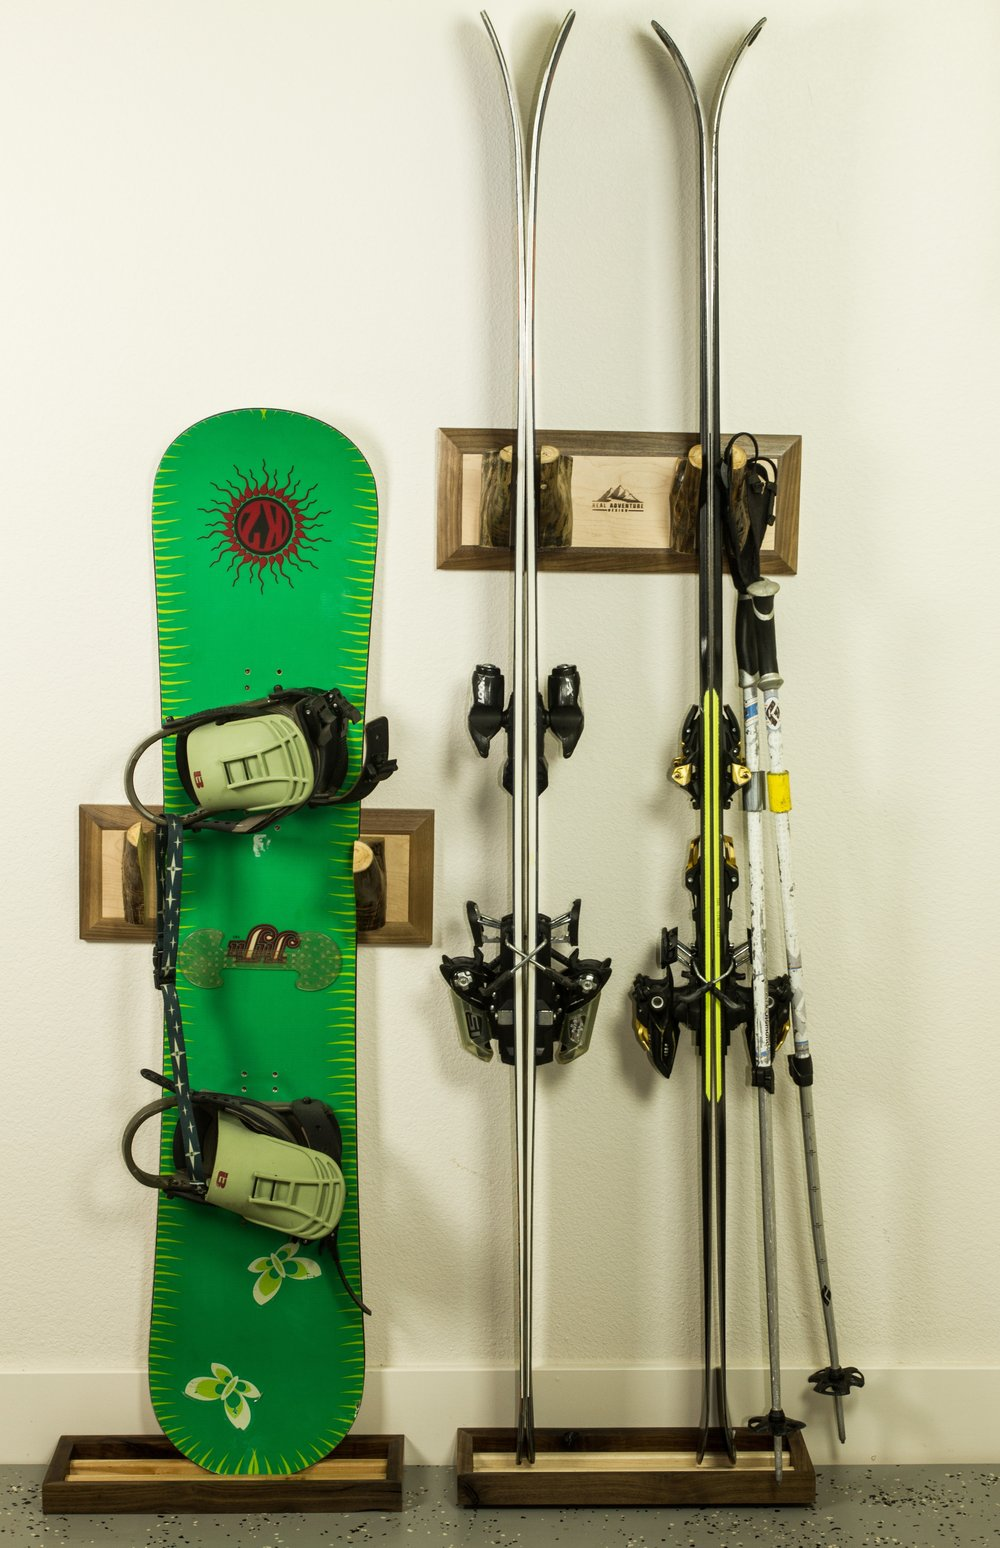 There are two ways to hold a snowboard.